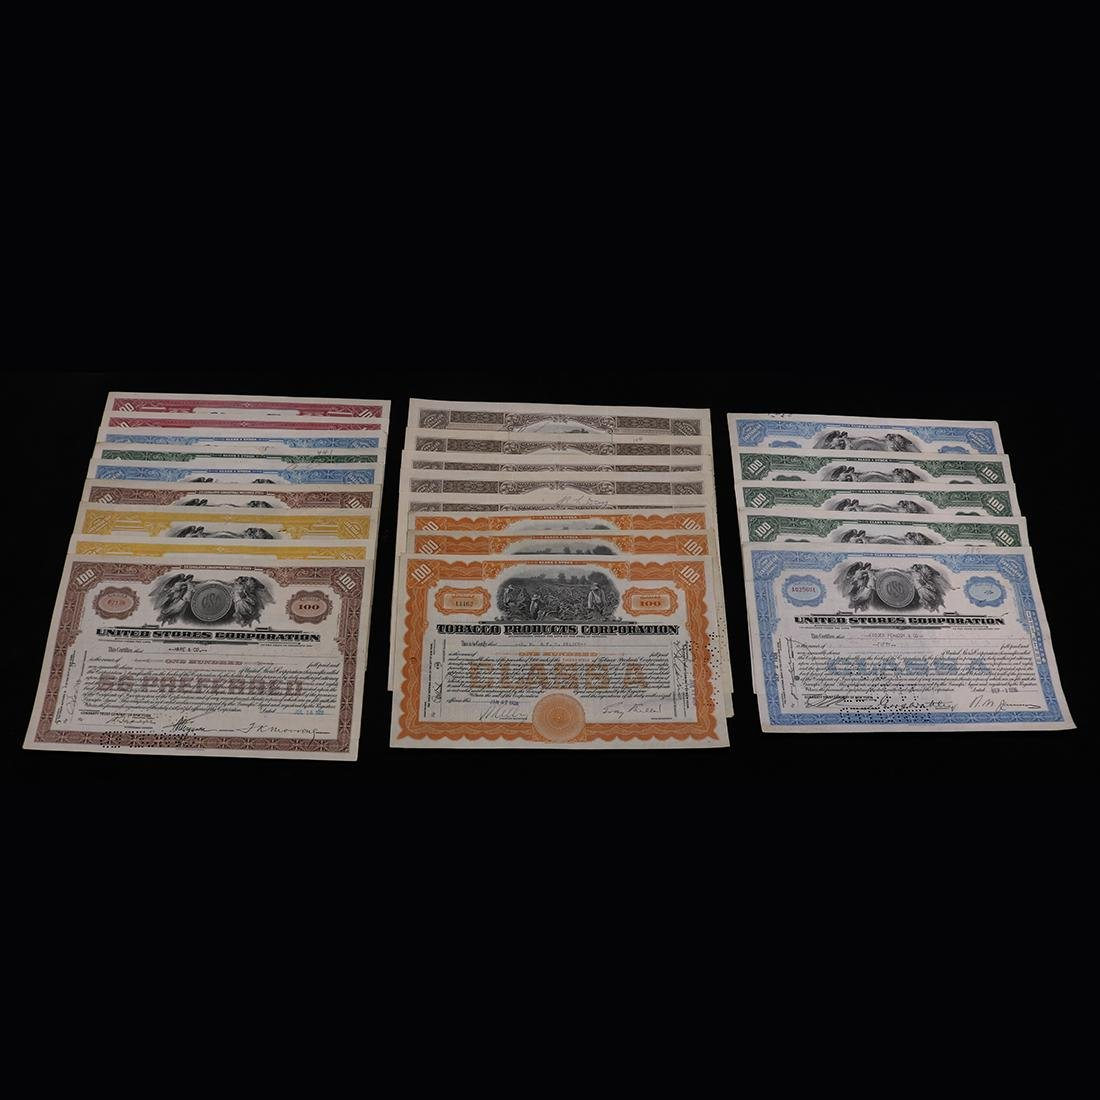 (lot of 25) Stocl certificates from Tobacco Products